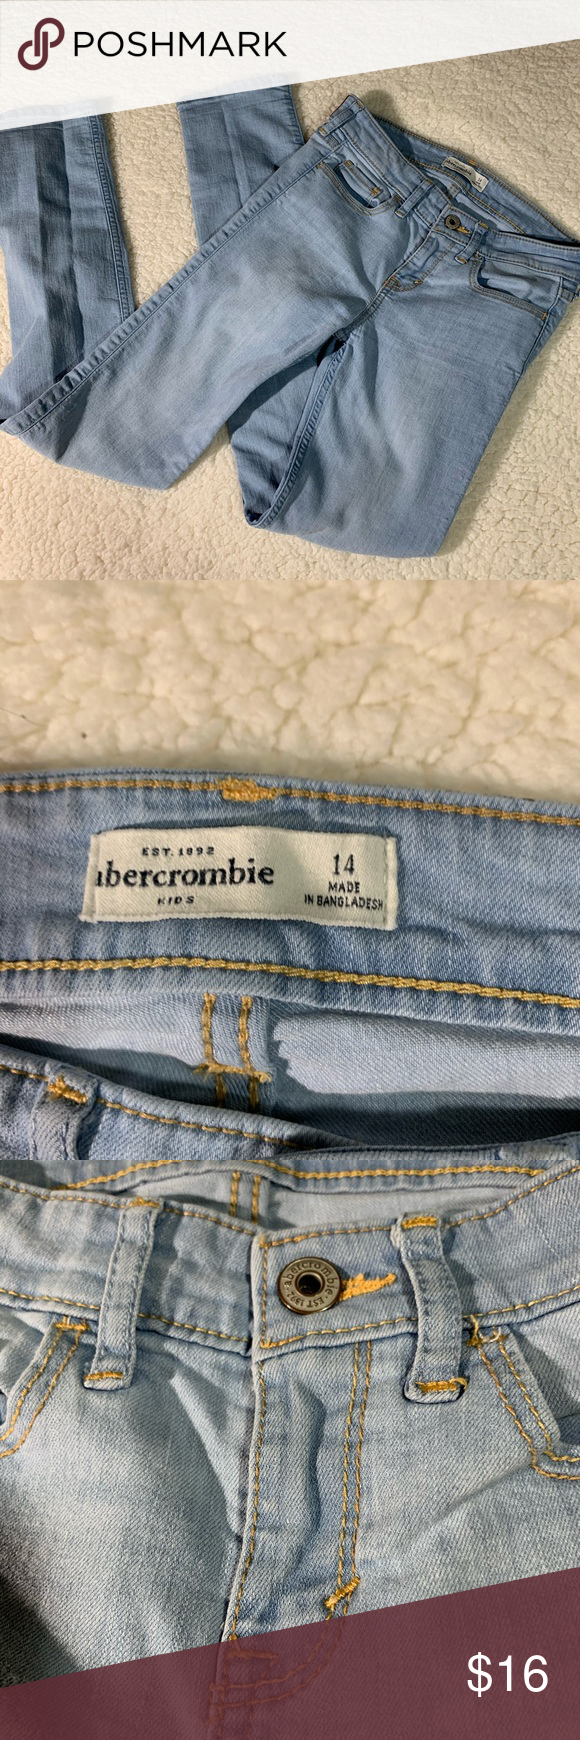 Abercrombie jeans 14 T1192 These are so soft ad cute . Light blue skinny jean no holes rips no stains near new great shape  Length 36in Inseam 28.5 in Waist 14 in Ankle 5 1/4  Thank you for shopping my closet 👡👚👗❤️❤️👢🧳🧢🥾 (all measurements  taken laying flat)and are approximately  All items are from a smoke free 🔥and pet free 🐶🐱home have a great week. Please dm me for any questions or pics needed. Abercrombie & Fitch Jeans Skinny